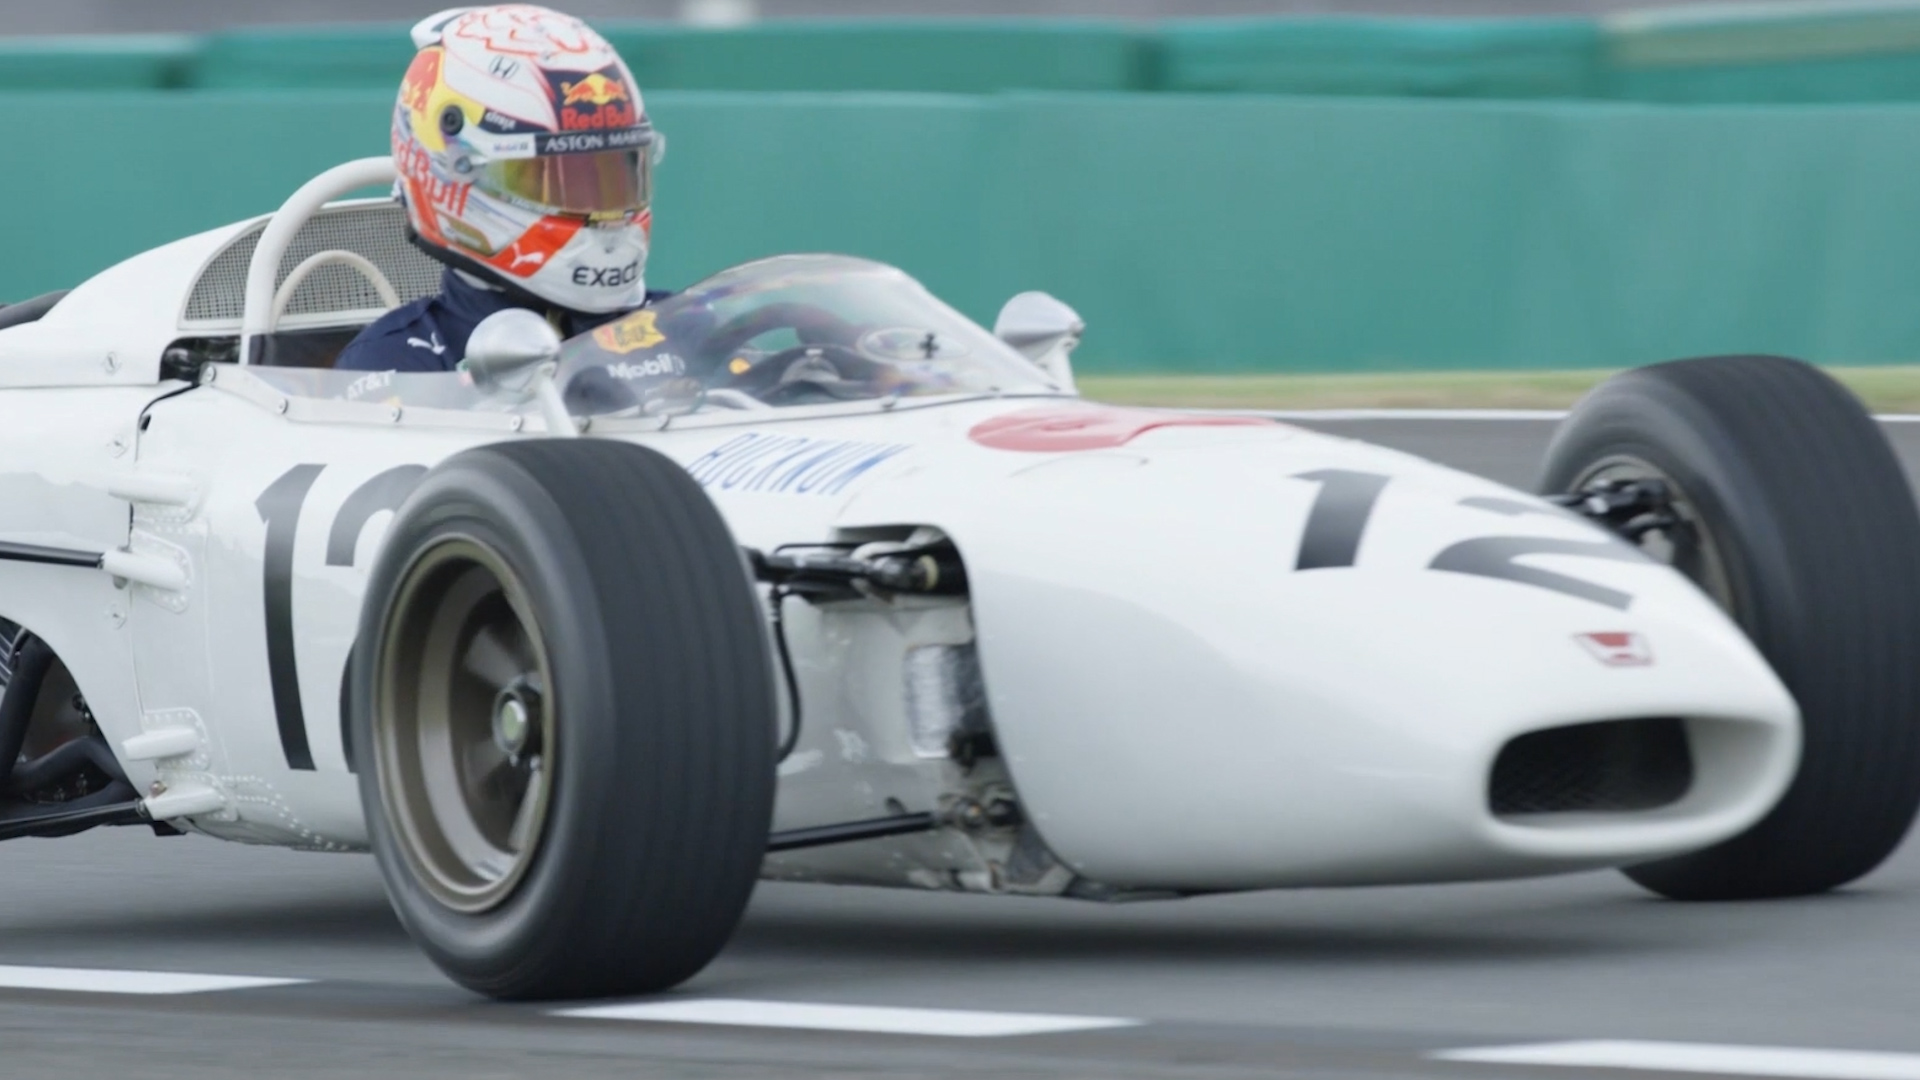 Max Verstappen drives a vintage Honda F1 car in Japan